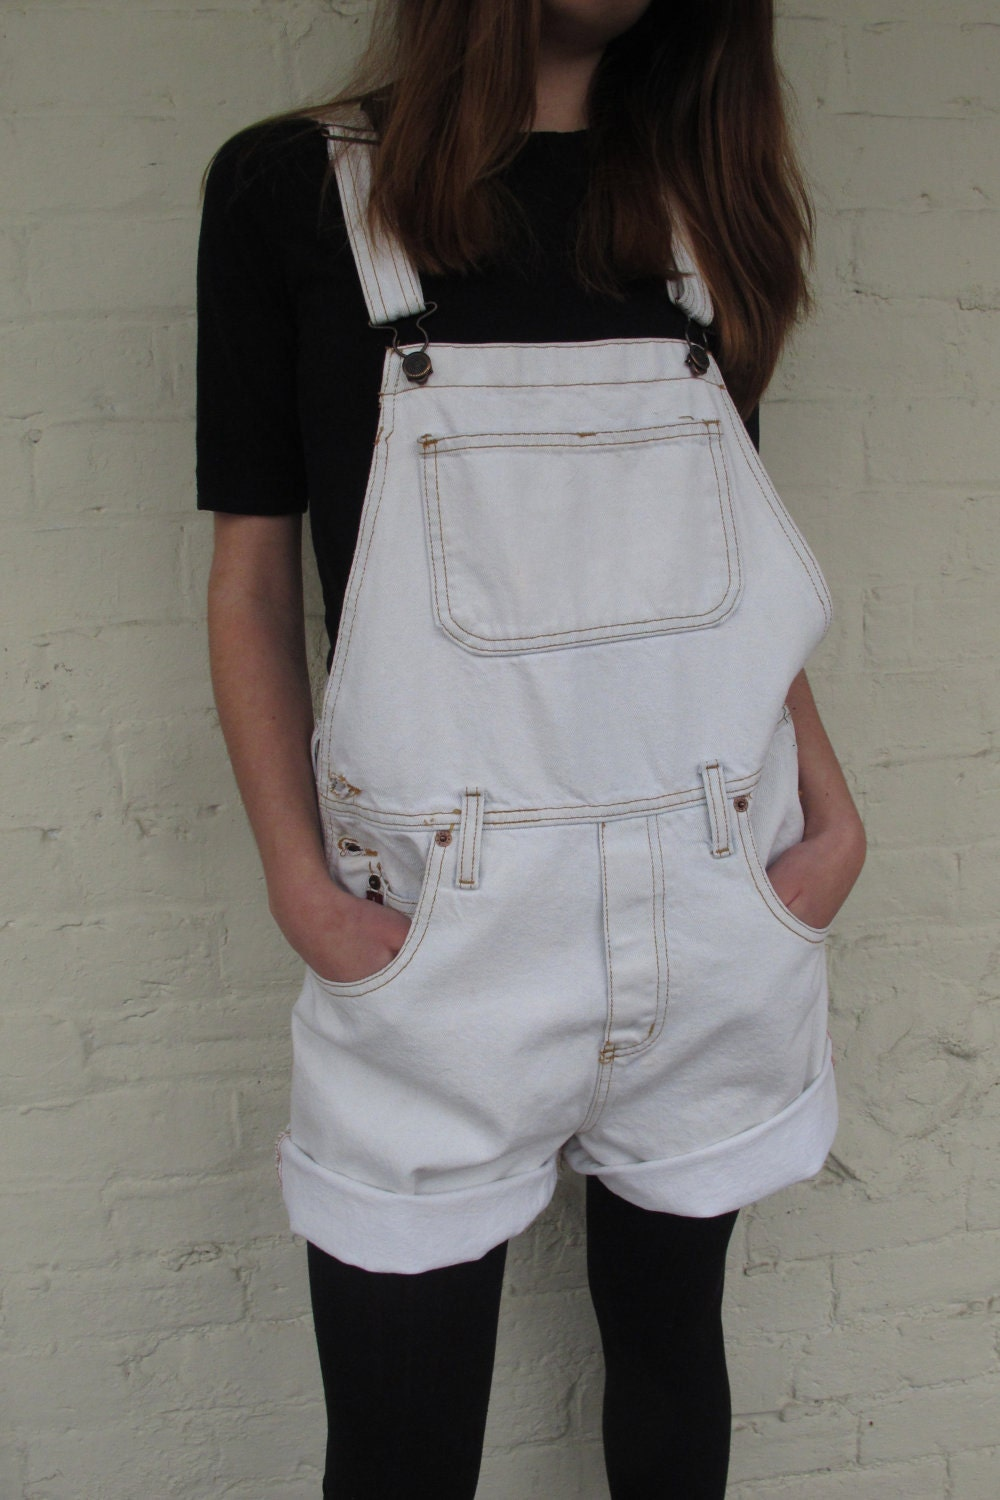 Women's overall shorts are perfect to add some character to your look! Our site has an extensive collection and you will be able to choose out a pair that is suited to your needs. Women's cheap overall shorts are the perfect flash back from the seventies and any fashionista will know what it means as a lady to pick up a bargain and step out.